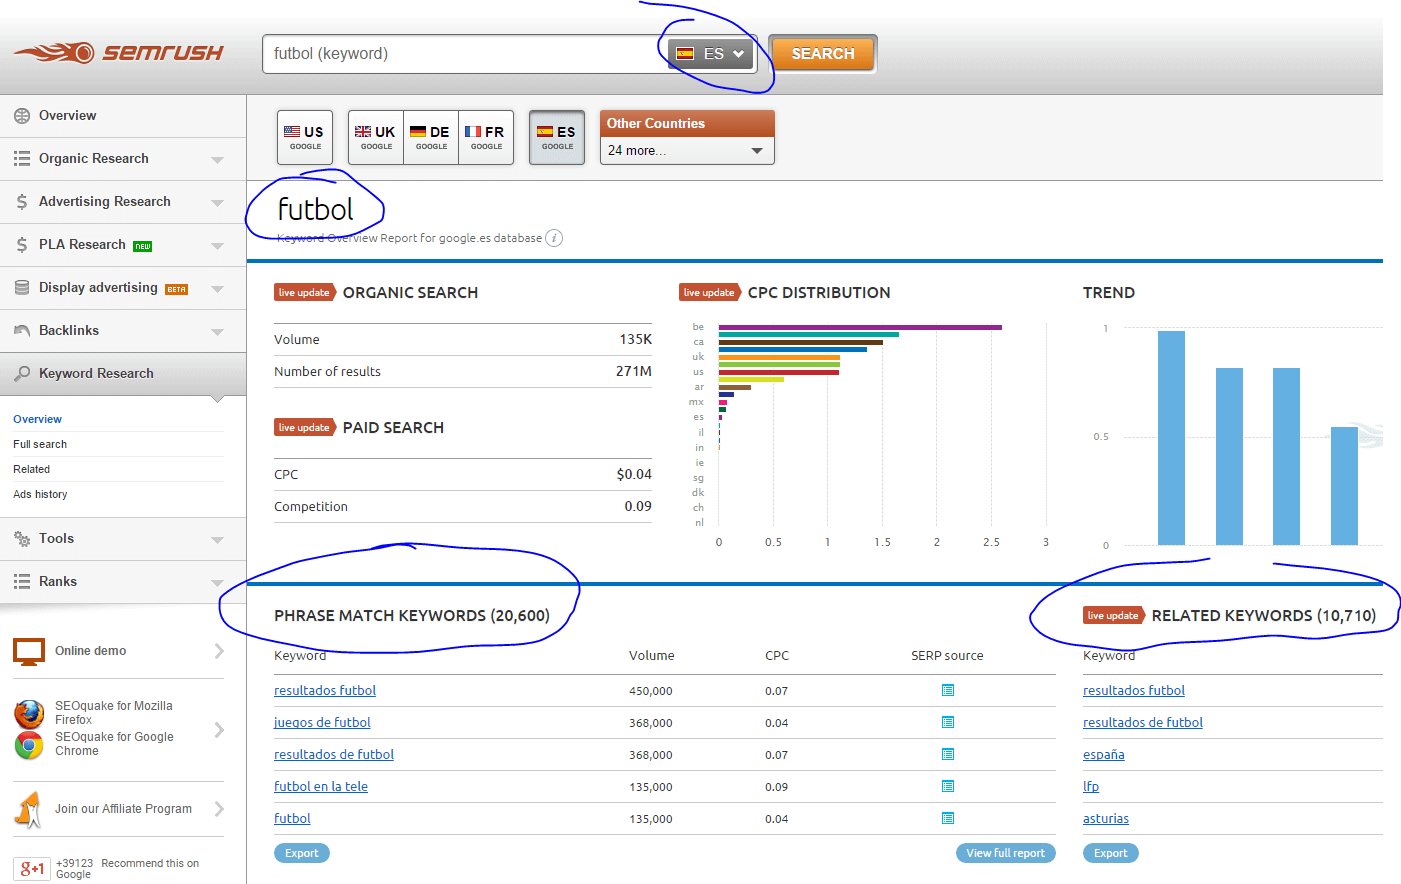 spanish semrush example